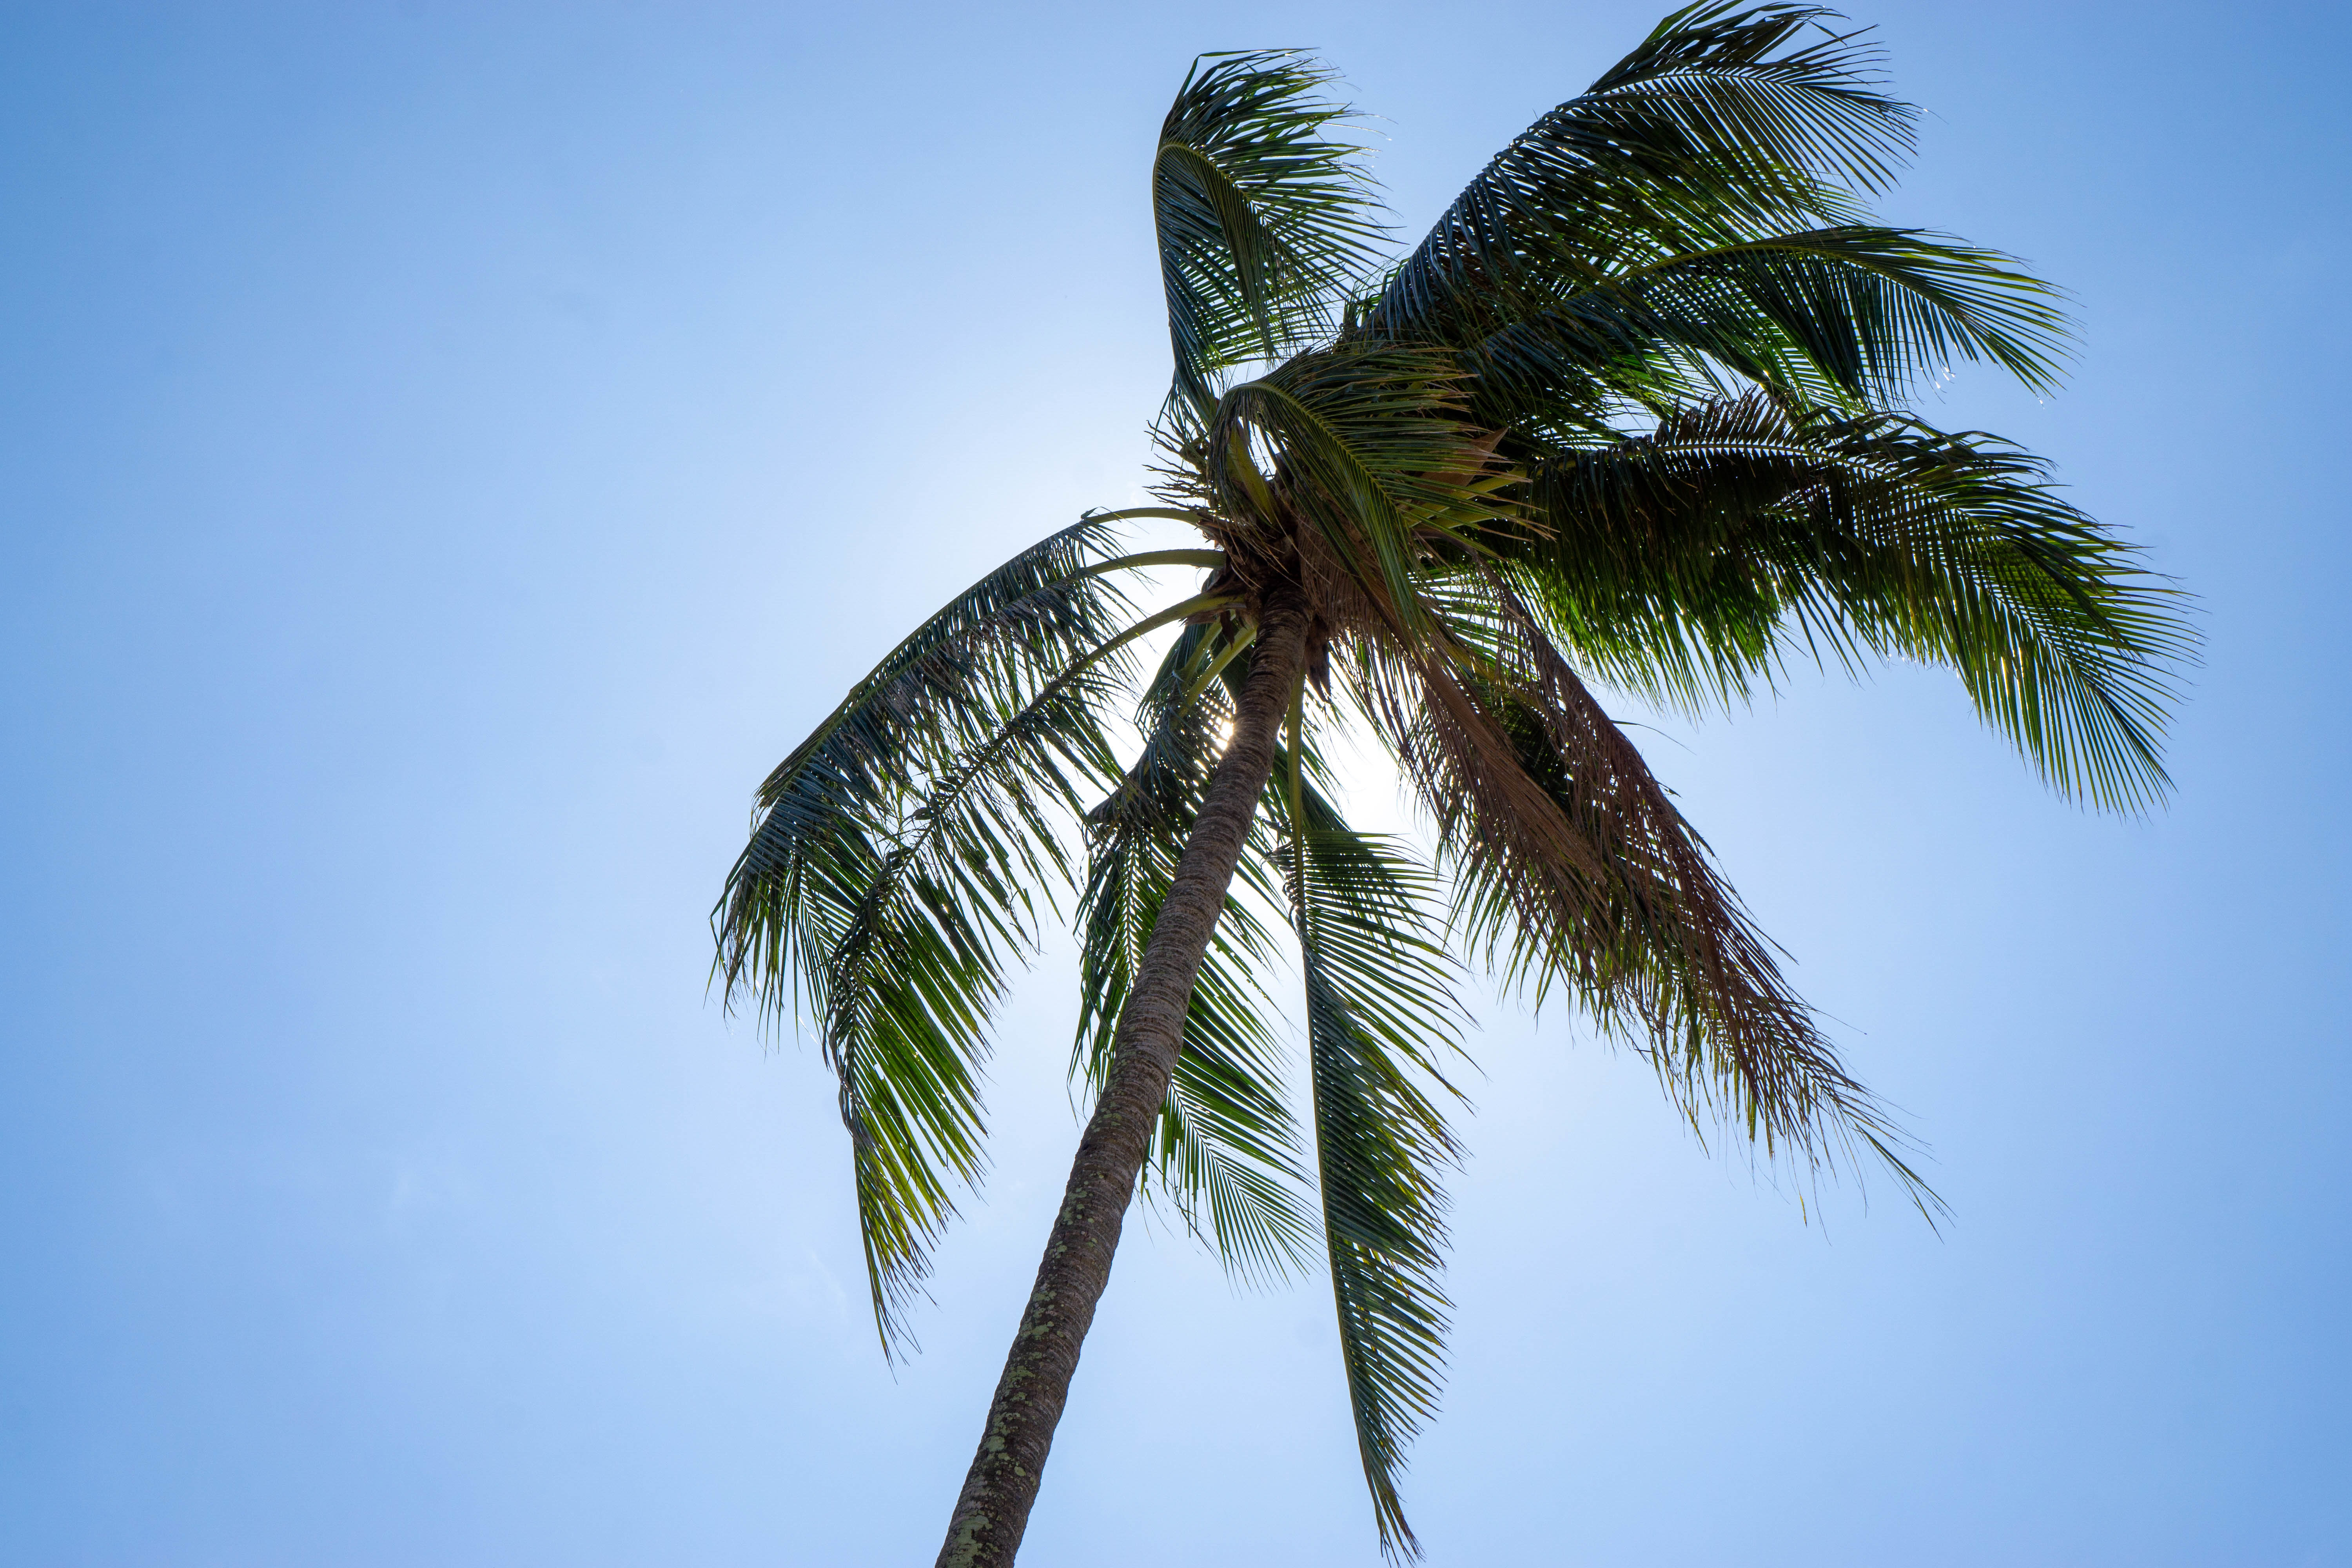 107753 download wallpaper Nature, Palm, Wood, Tree, Sky, Tropics, Summer screensavers and pictures for free